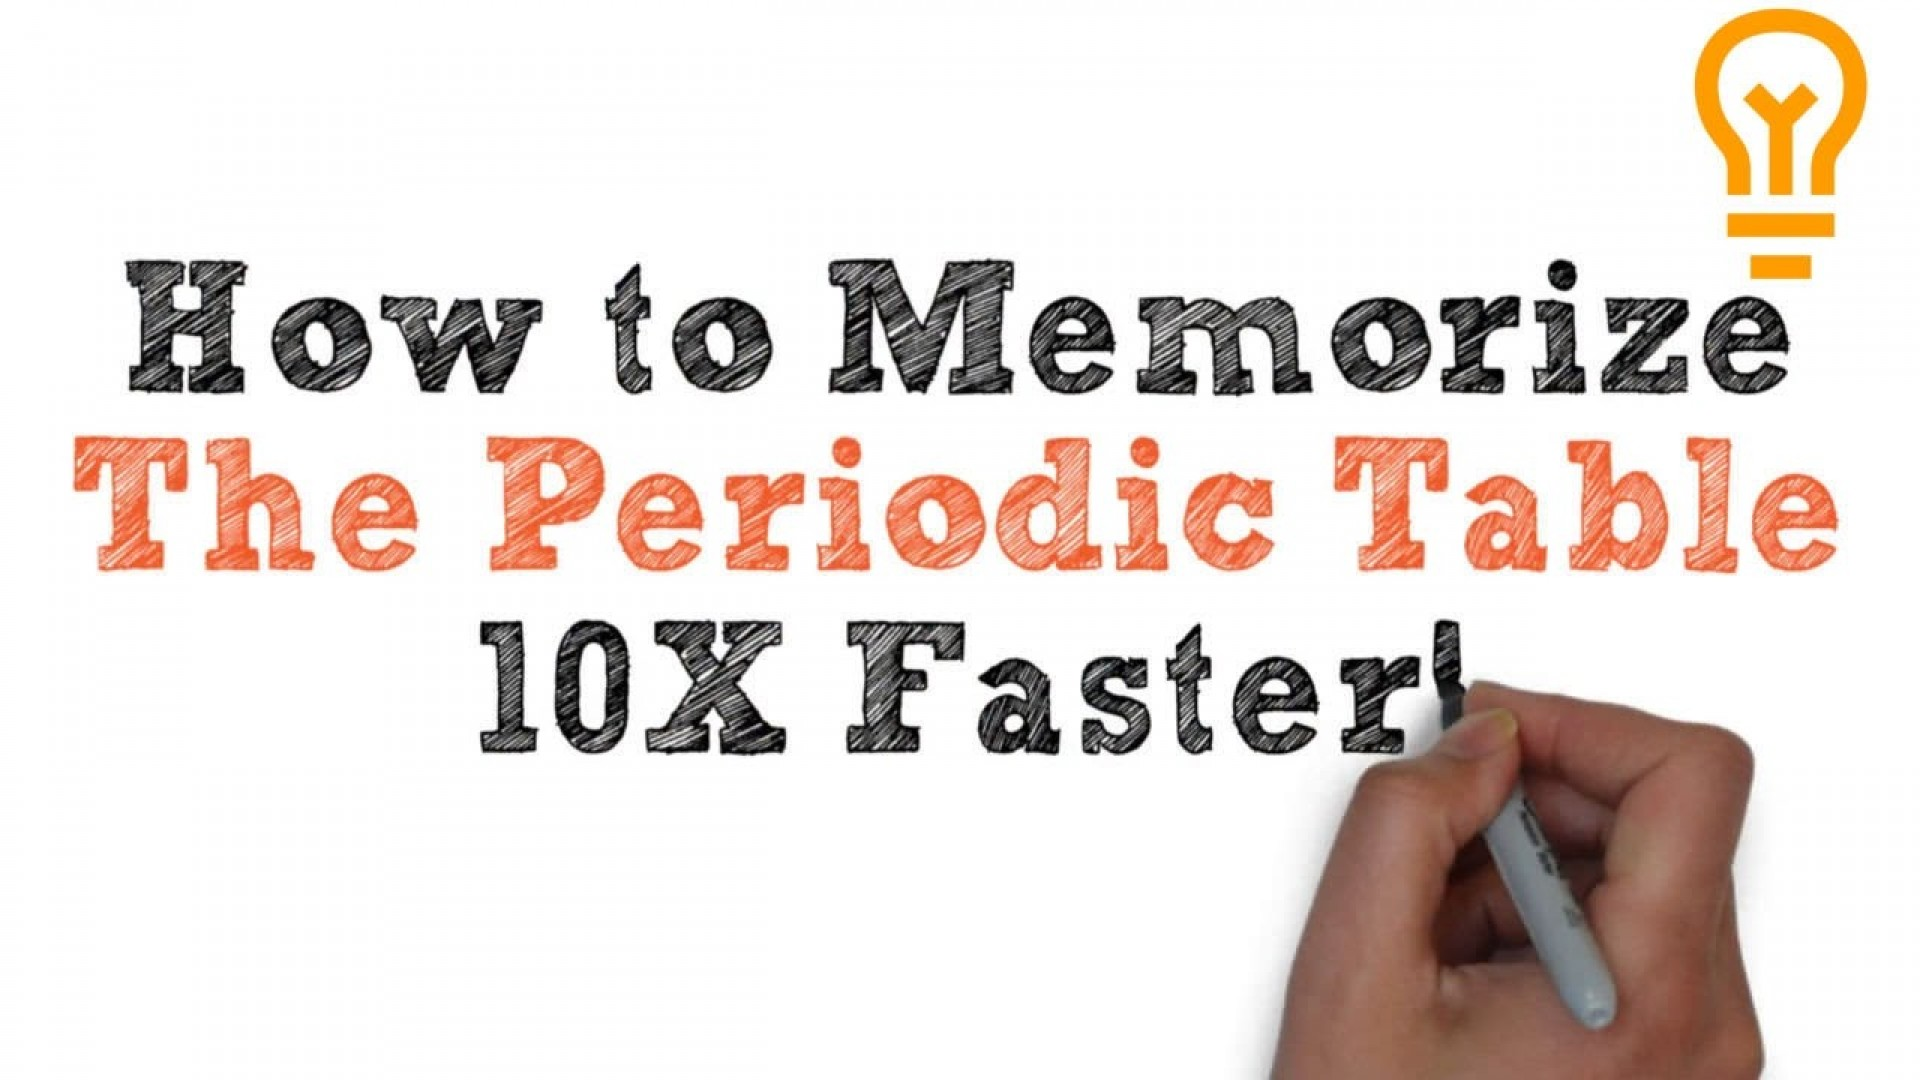 011 Maxresdefault How To Memorise An Essay In Hour Unbelievable A Few Hours Remember 1 1920